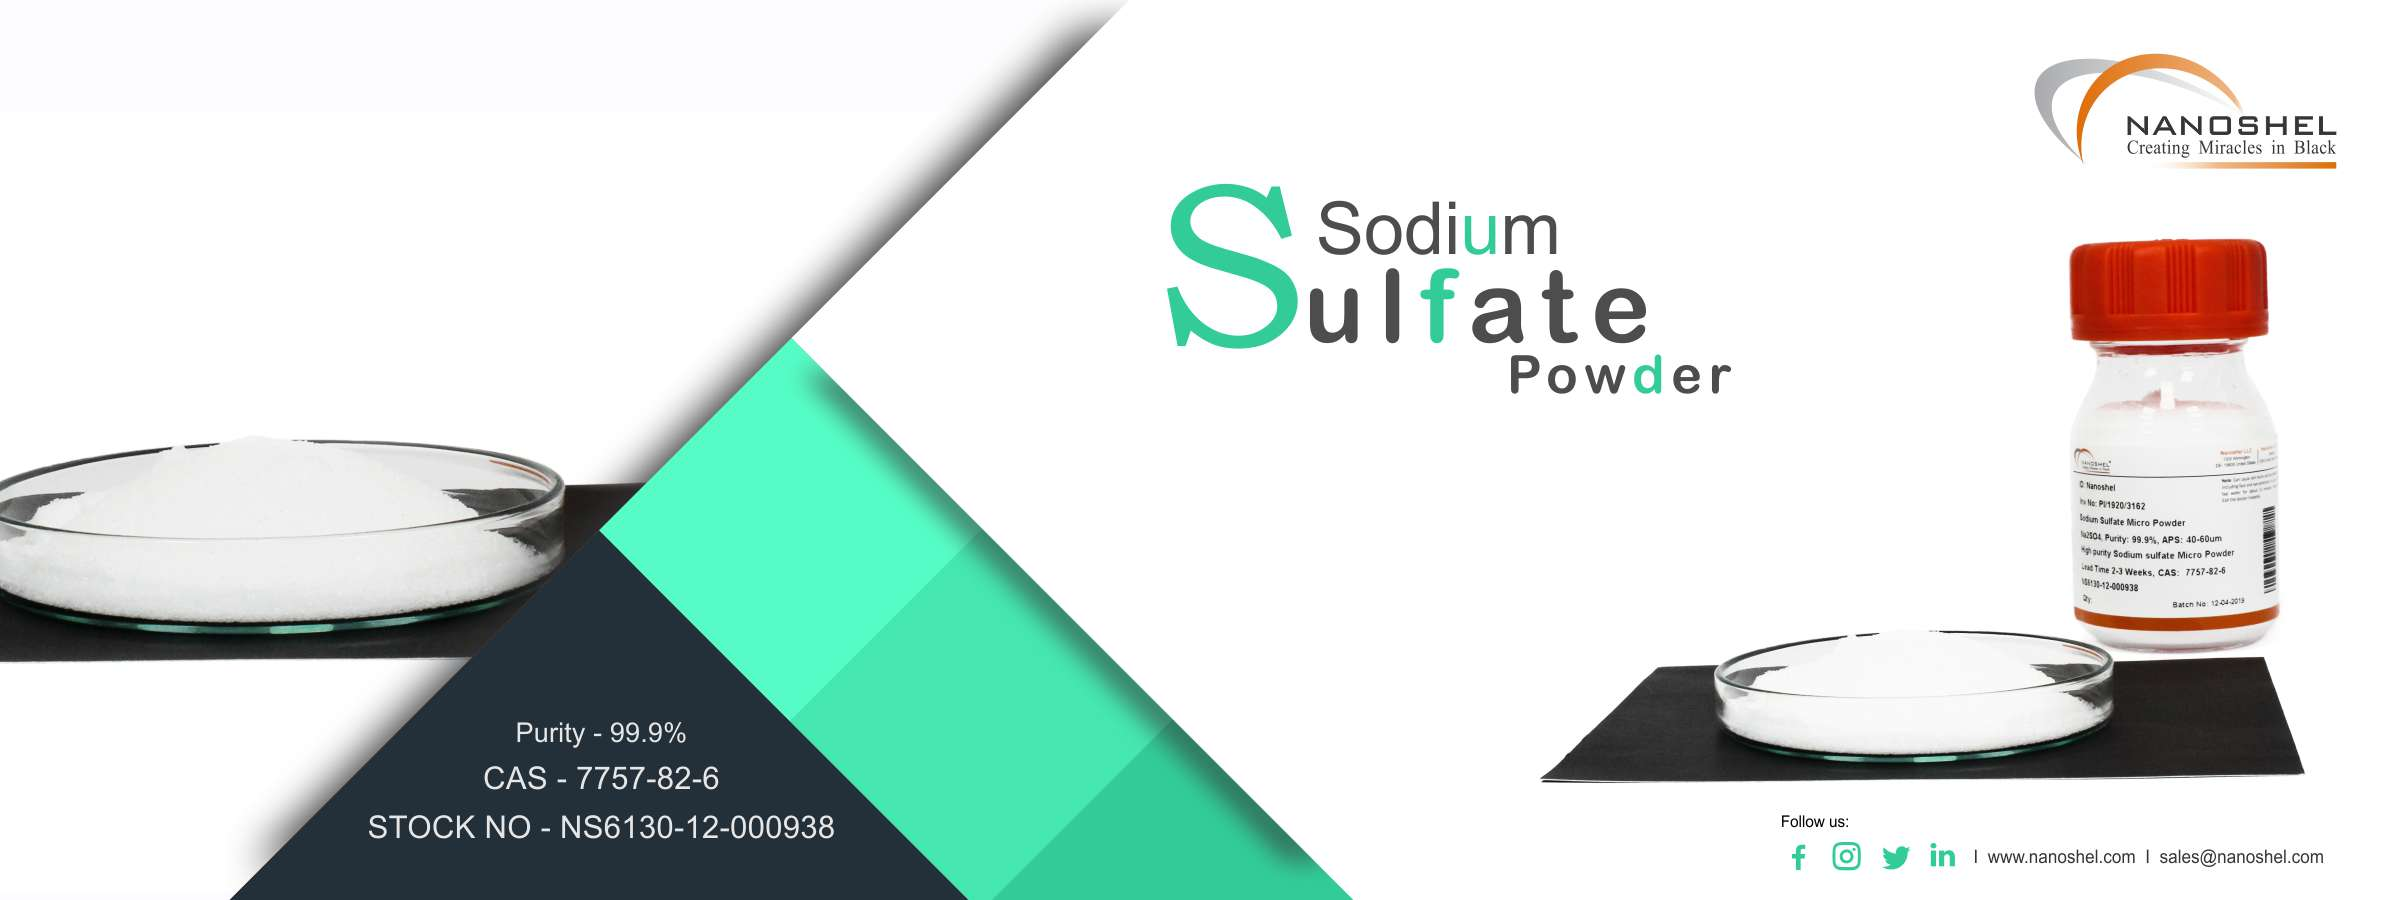 Sodium Sulfate Powder